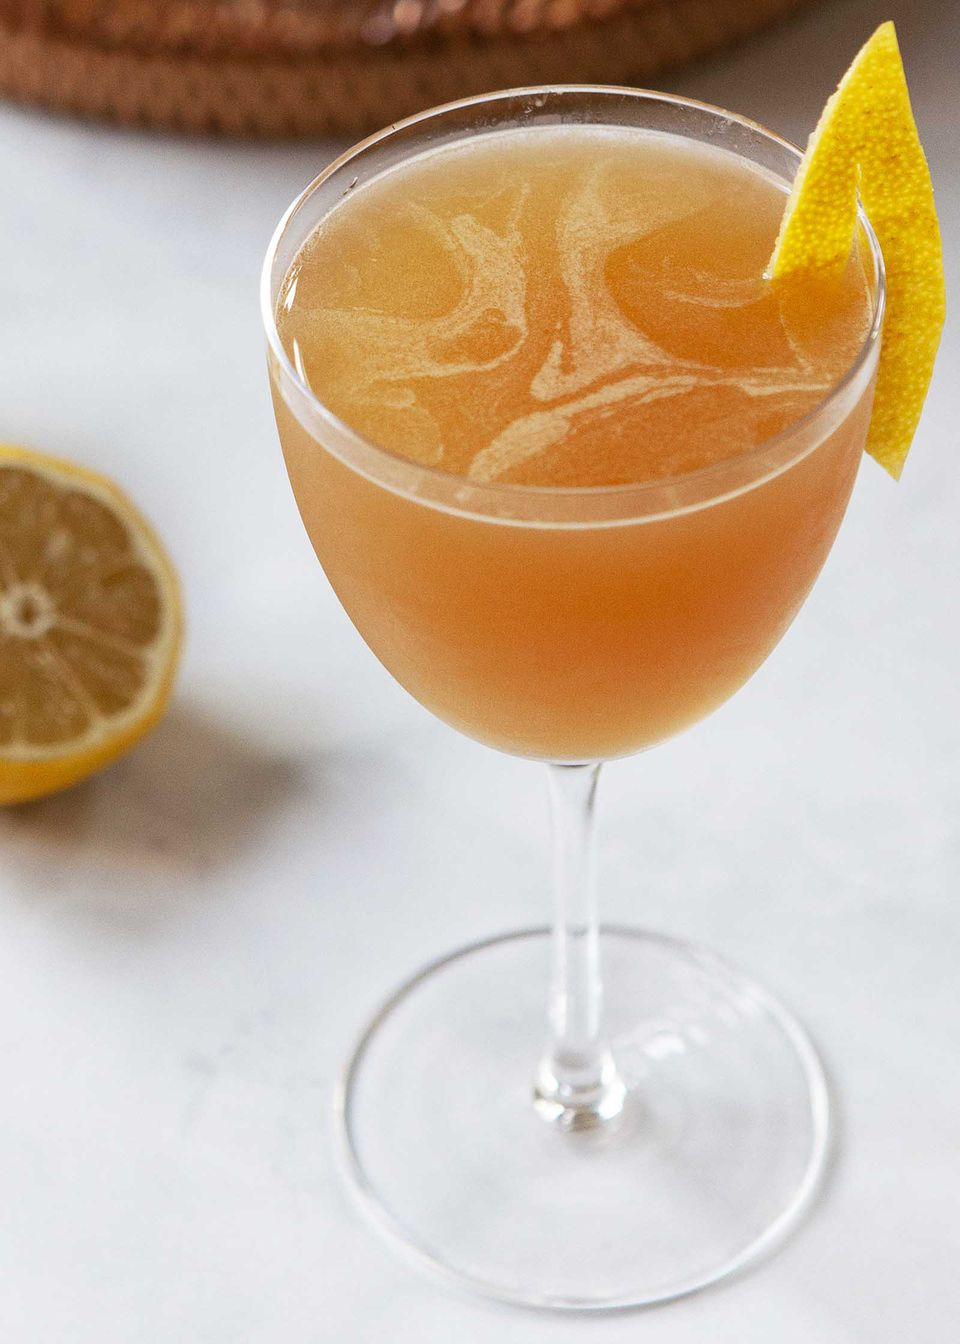 The best Sidecar cocktail with a lemon peel on the edge of the glass.